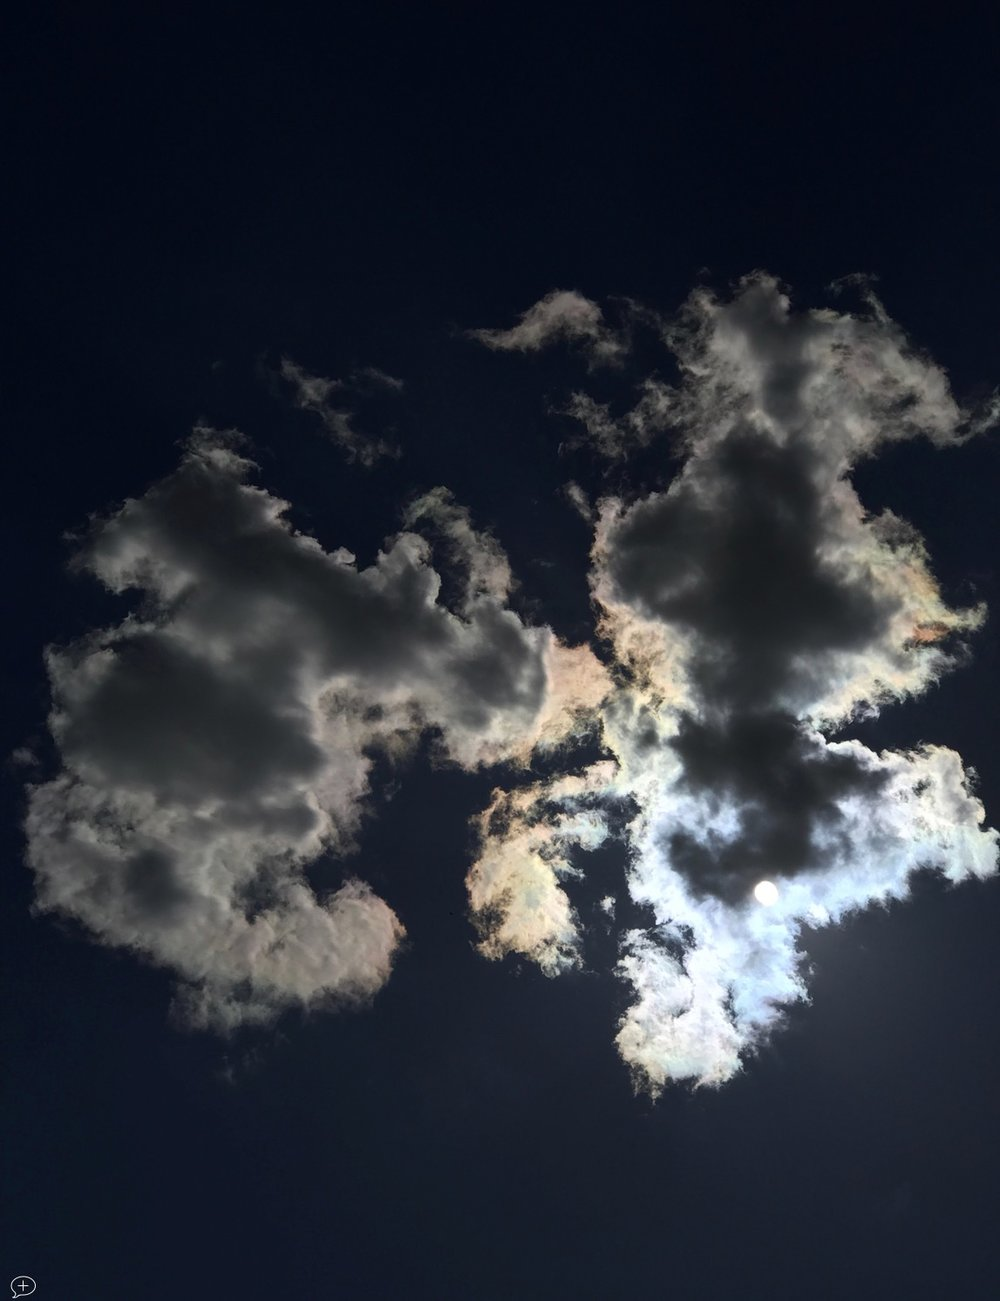 """17. S un Behind Clouds , iPhone 7+, 2017. Saratoga Springs, NY. (Canvas Photo, 16"""" x 20,""""). As you probably have already gathered, I have a fascination for clouds—made legitimate through a membership of the British Cloud Appreciation Society. This one was shot from the patio at the back of my house.  ©2017 Sean Walmsley"""